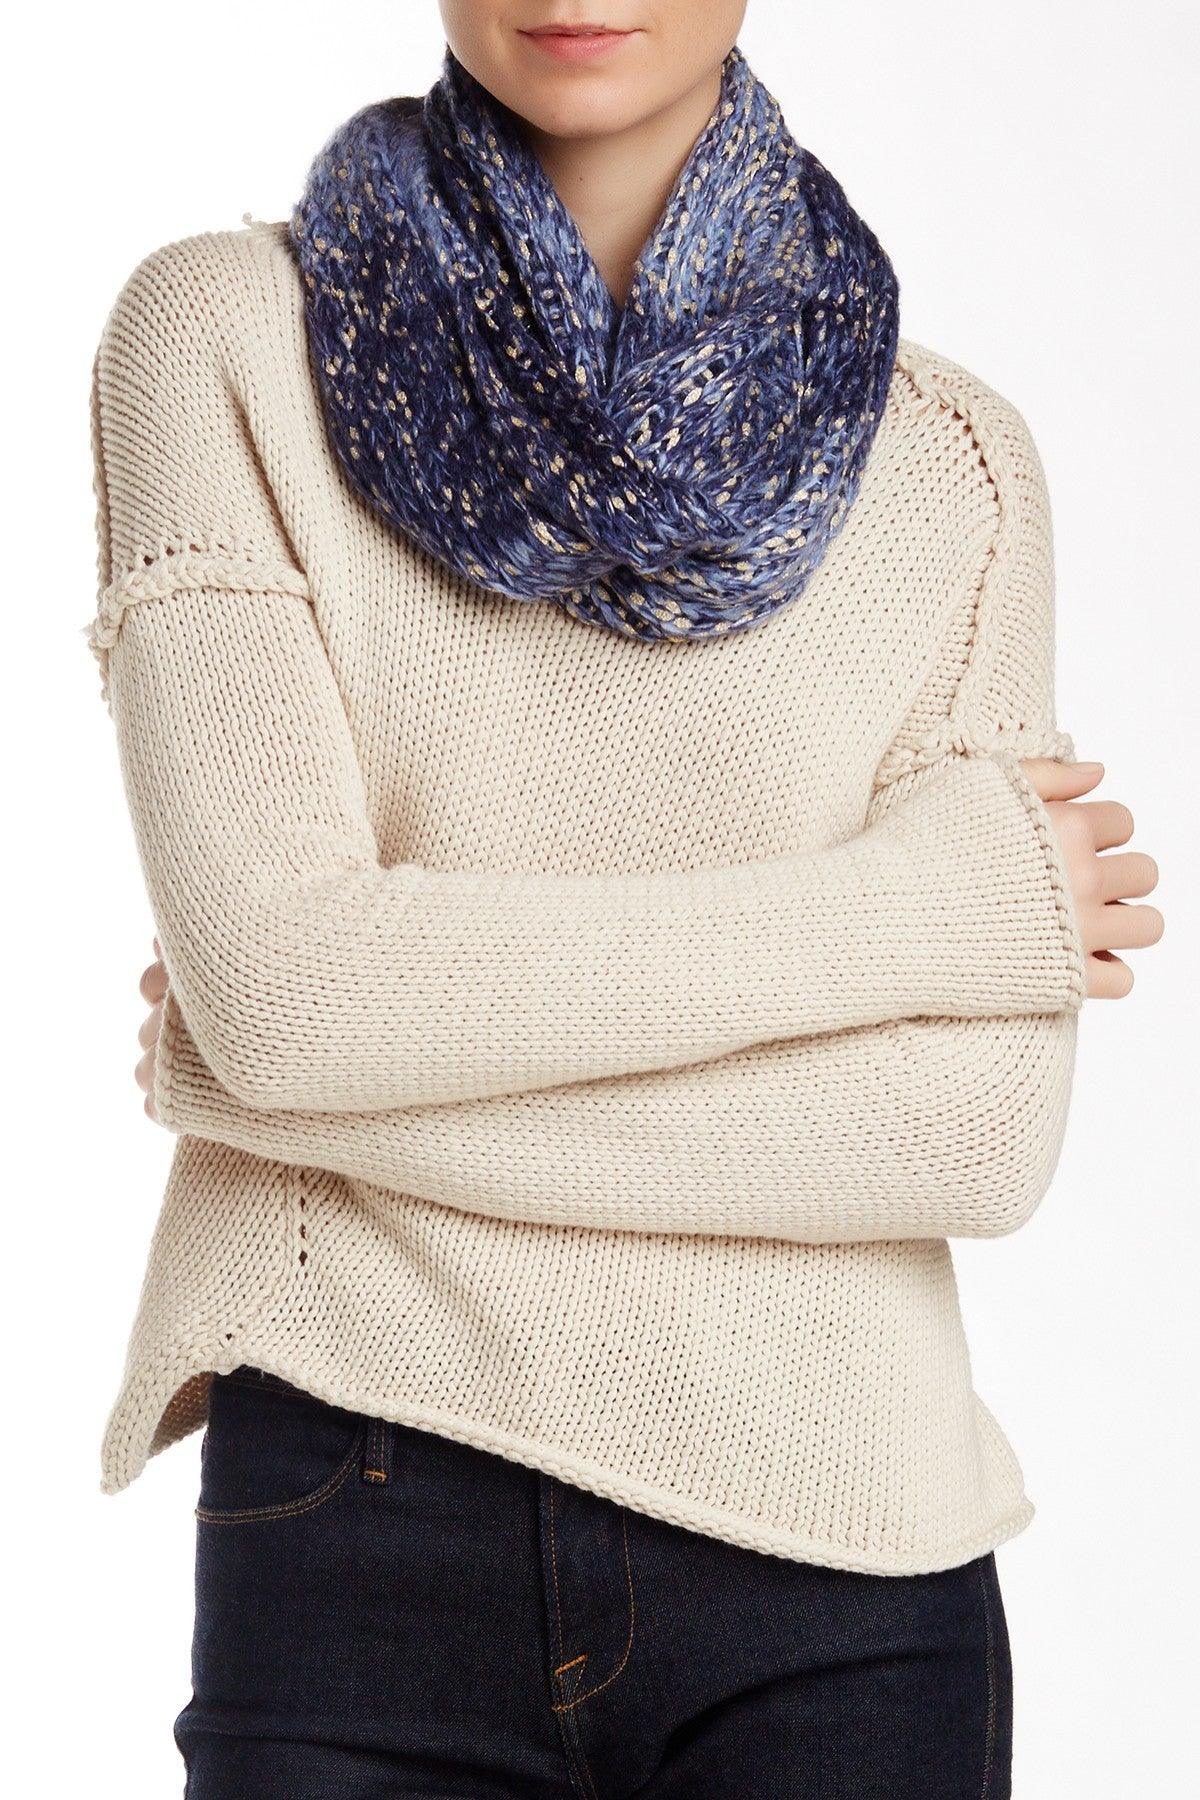 Solid Chunky Knit Metallic Eternity - Just Jamie